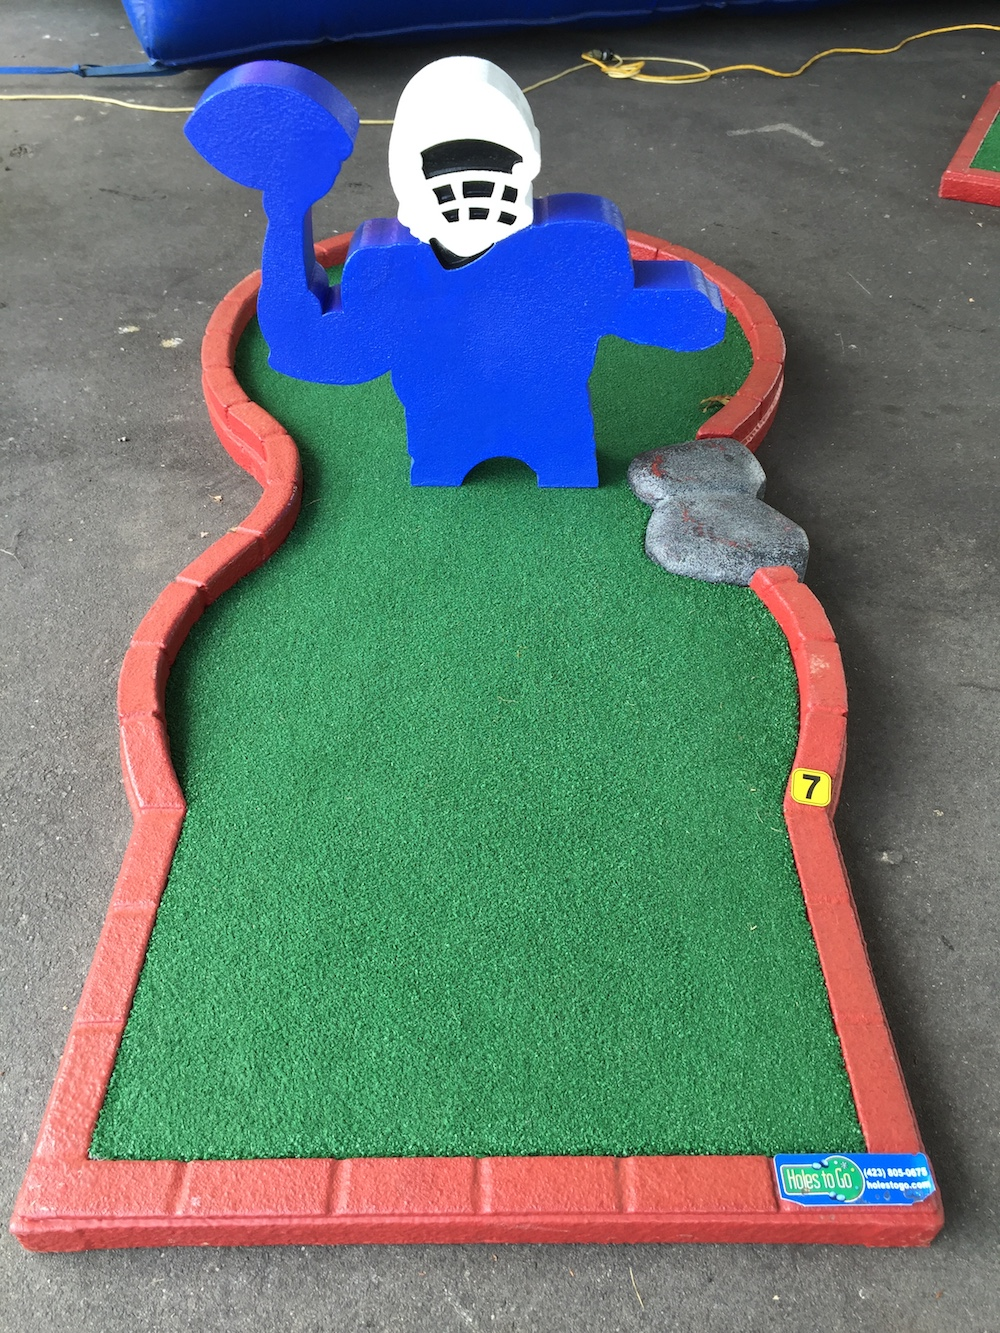 Marvelous Portable Mini Golf Courses Holes To Go Download Free Architecture Designs Intelgarnamadebymaigaardcom